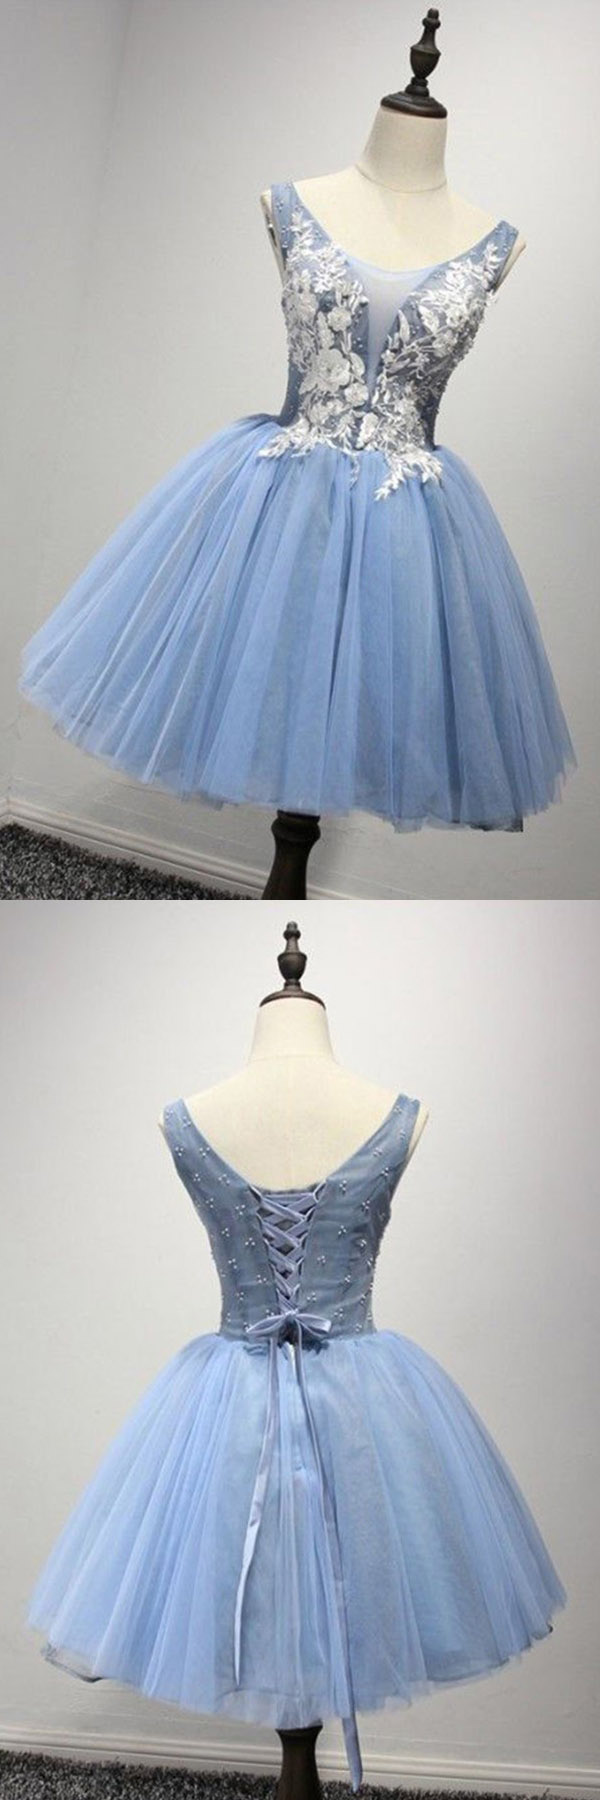 Scoop short blue tulle homecoming dress party dresses with appliques